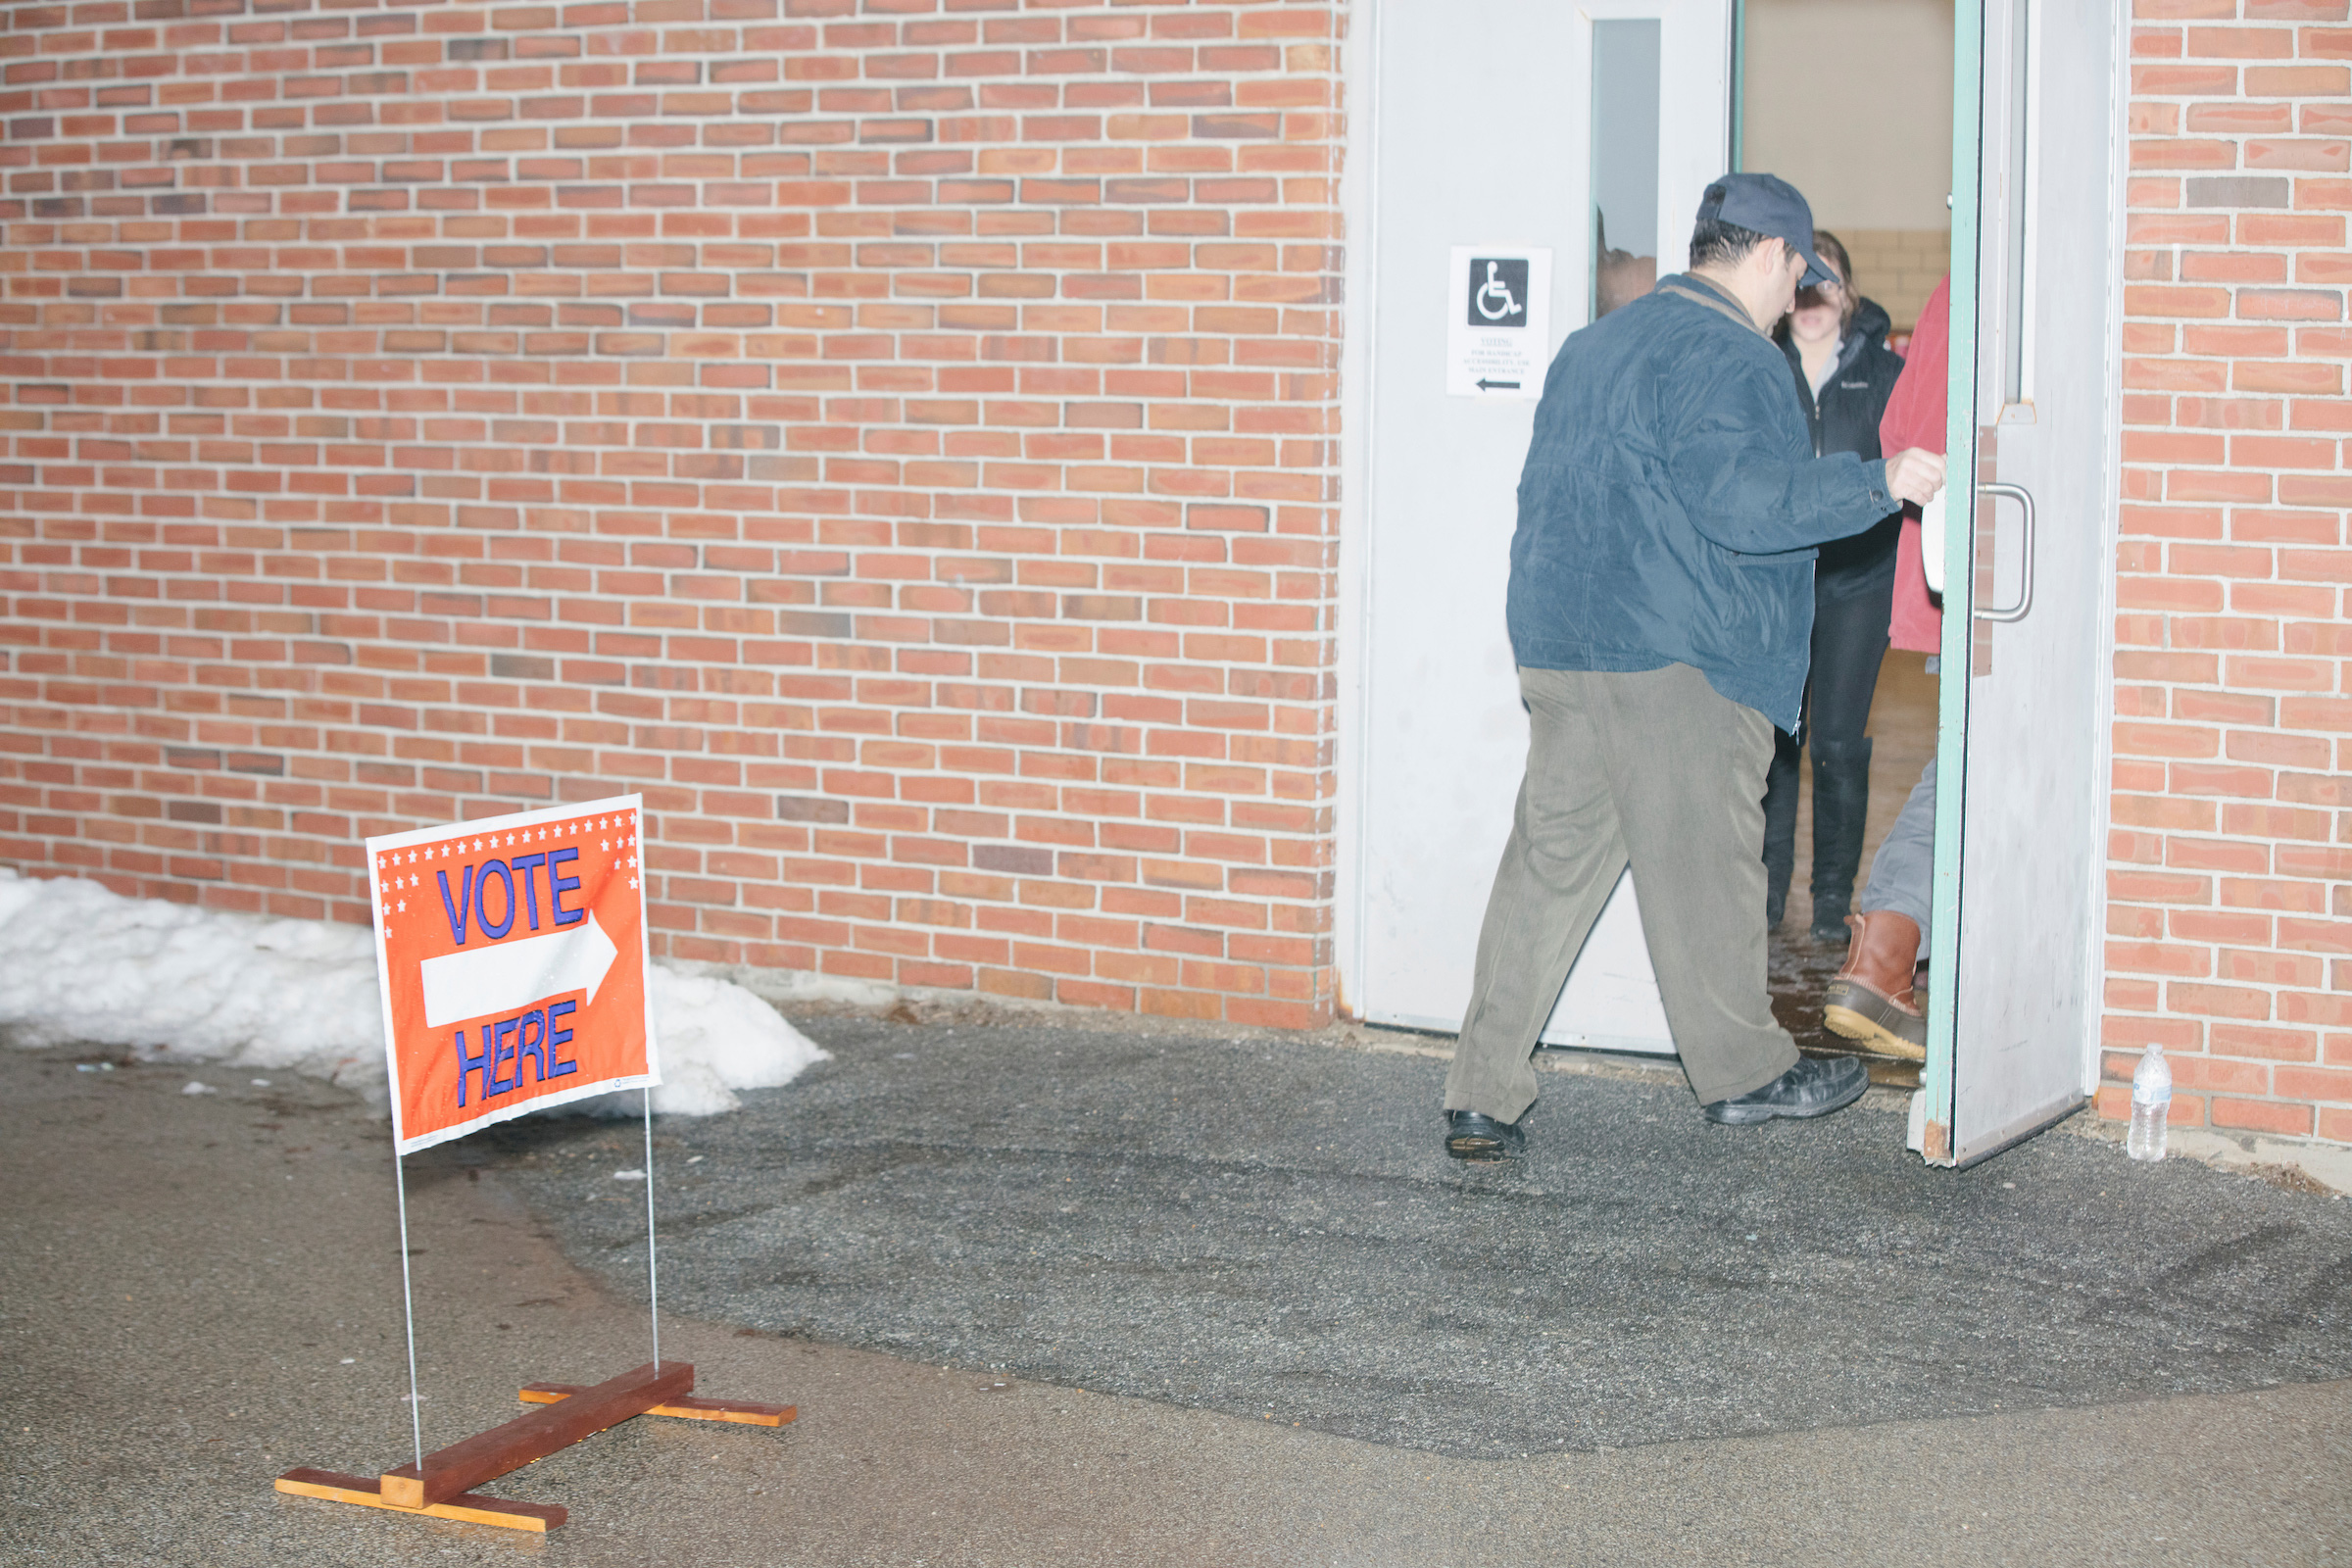 People arrive to vote in the New Hampshire Presidential Primary at Fair Grounds Junior High School in Nashua, N.H., on Feb. 11, 2020.